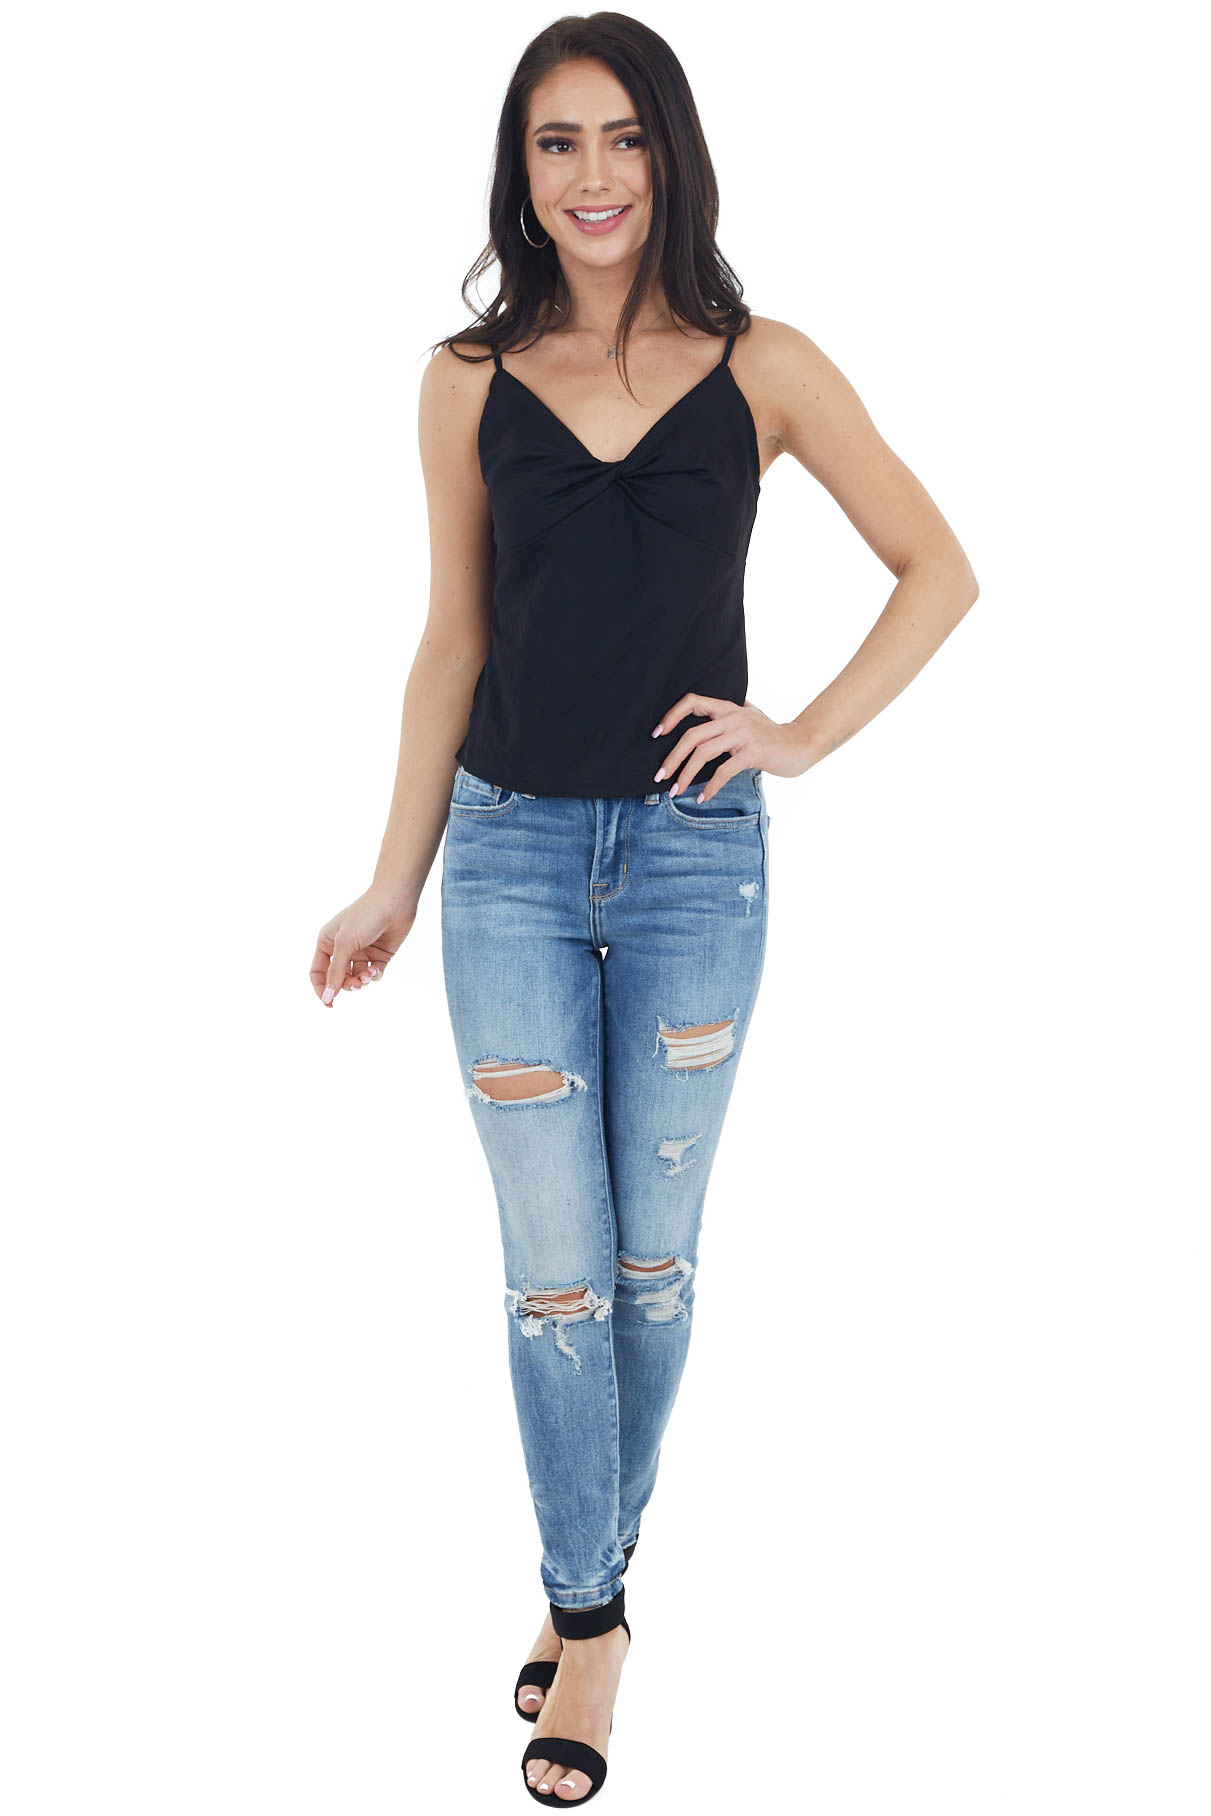 Solid Black Camisole Top with Front Twist Detail